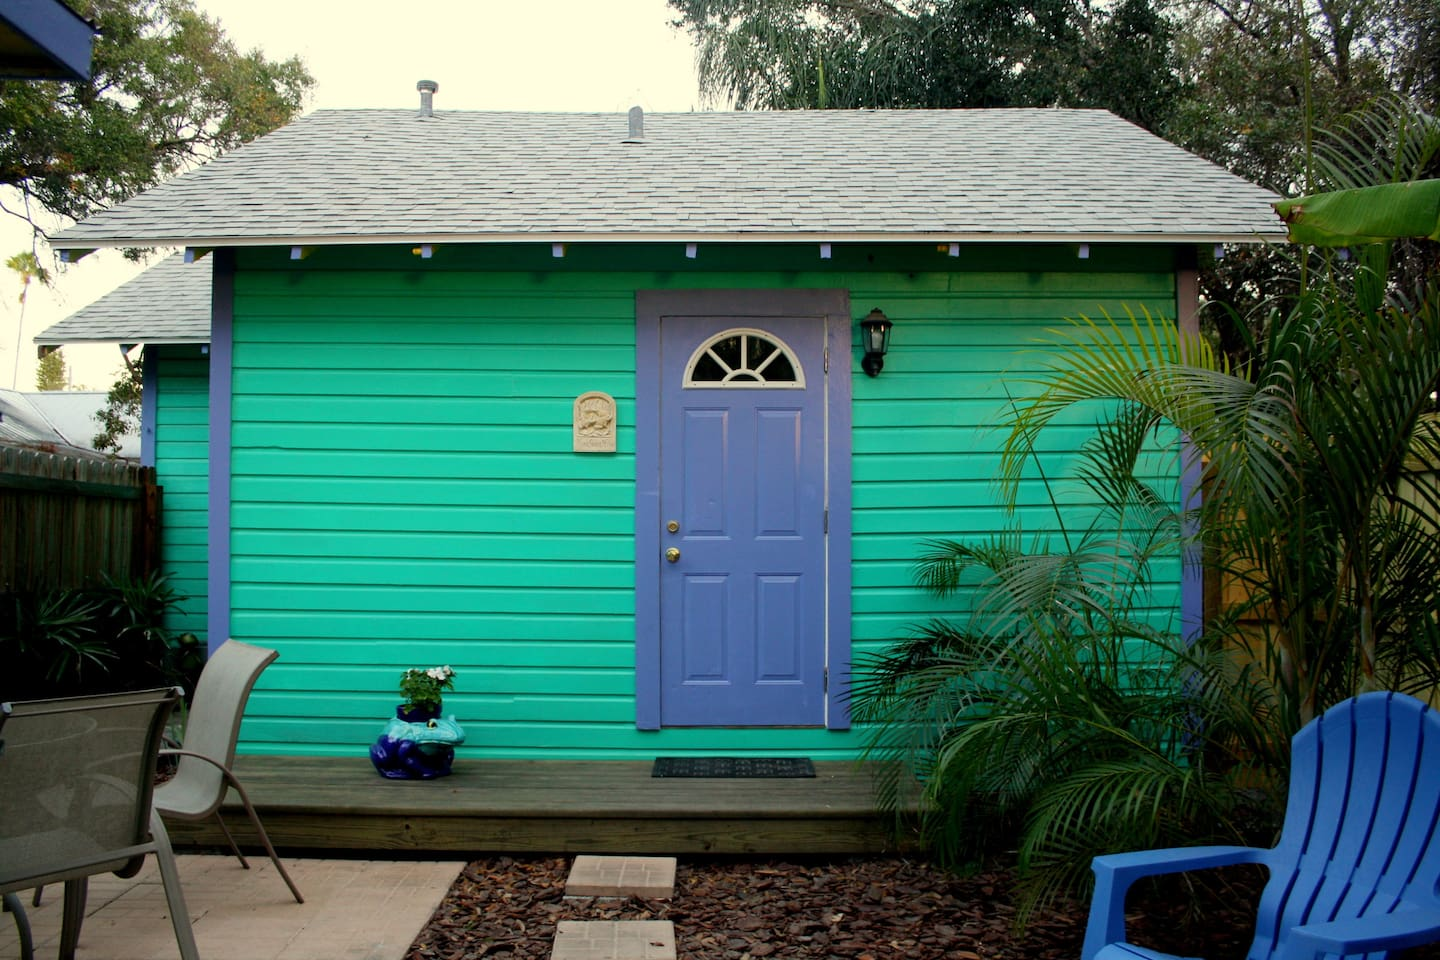 The historic 1925 Frog House has a tropical, completely fenced private back yard.